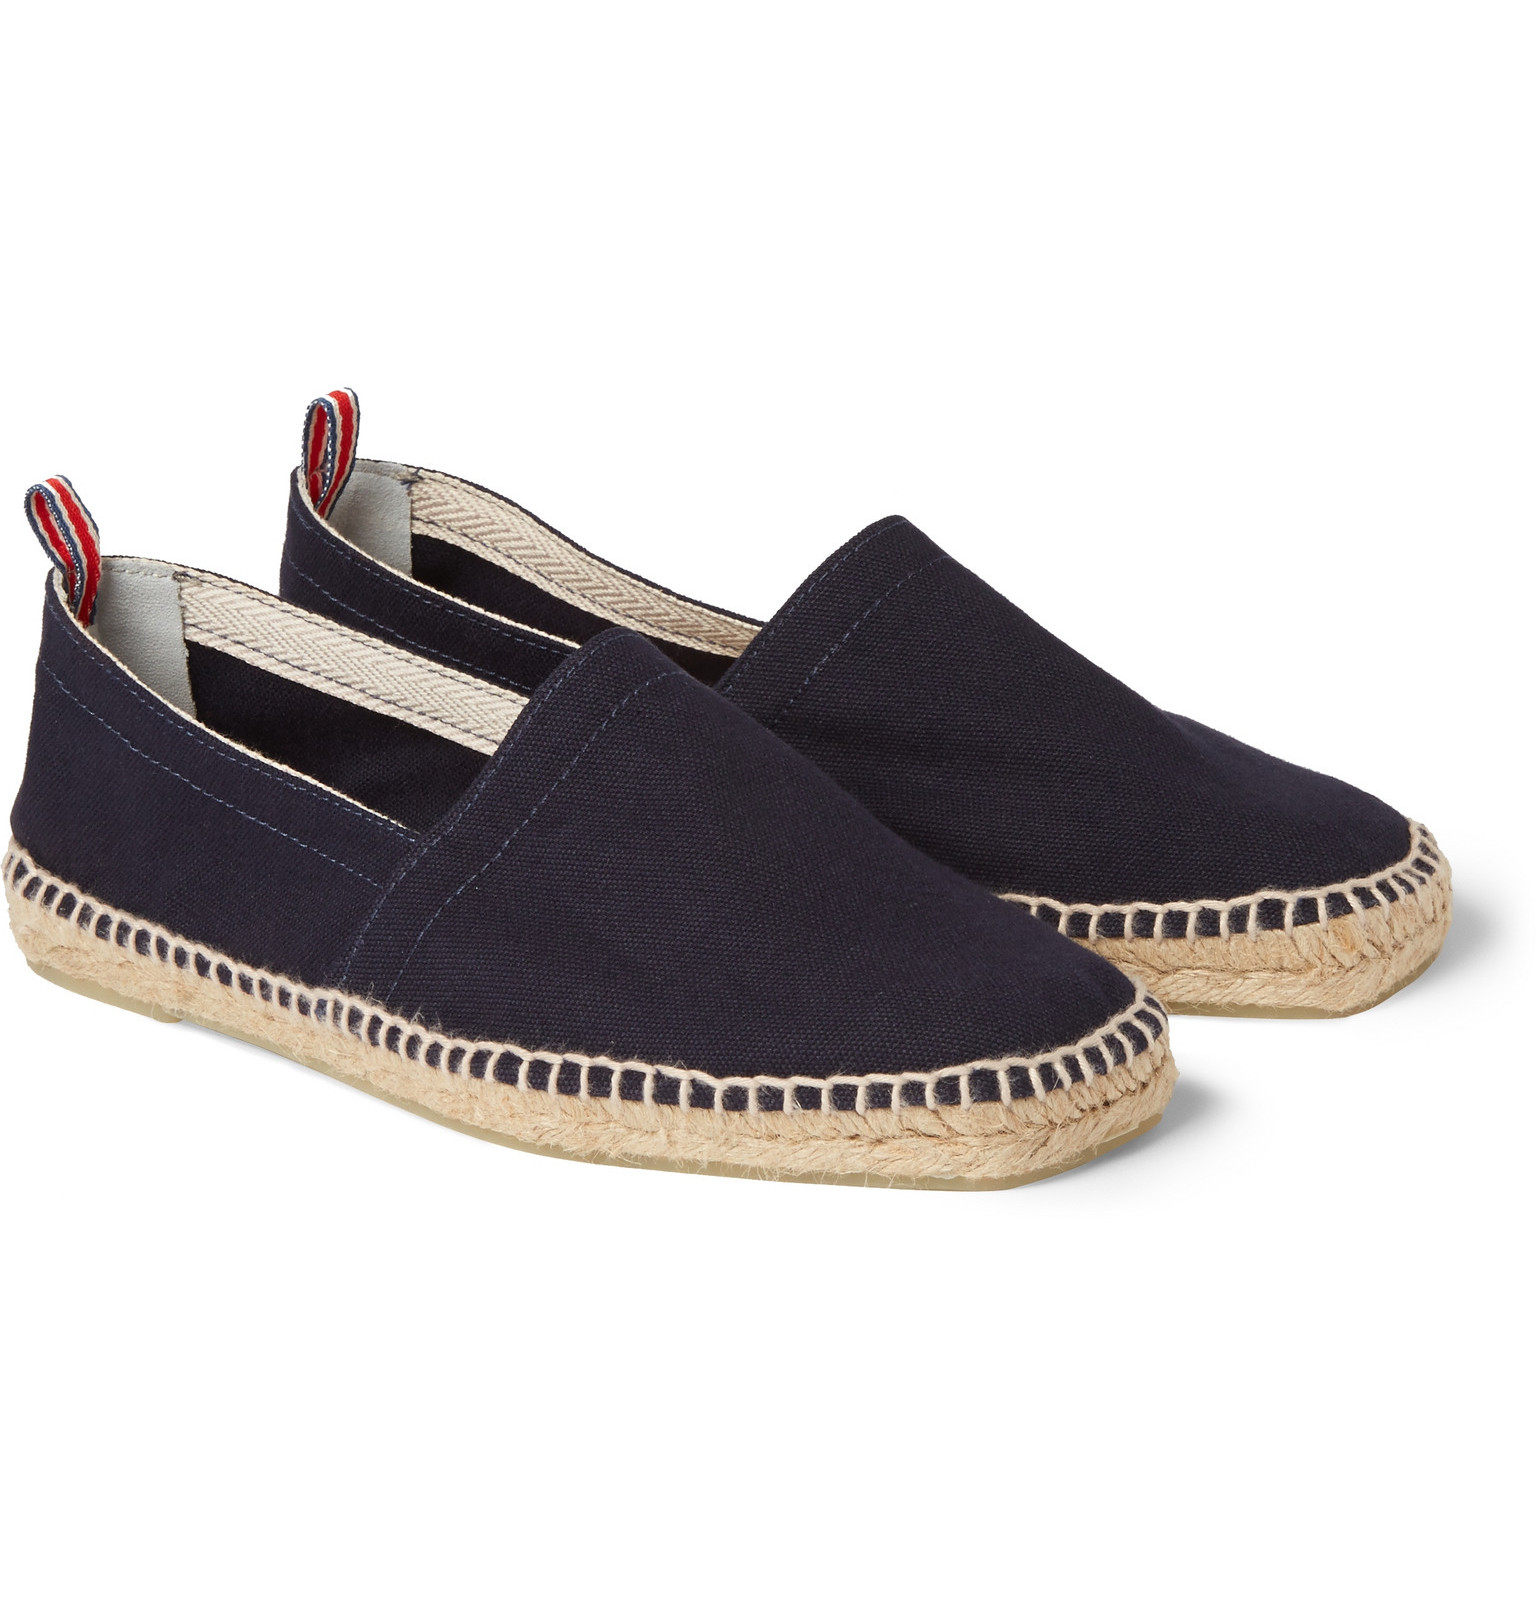 Find a great selection of women's espadrilles at truemfilesb5q.gq by Soludos, Tory Burch, Sam Edelman and more. Shop for espadrille flats, espadrille wedges, and espadrille sandals. Totally free shipping and returns.